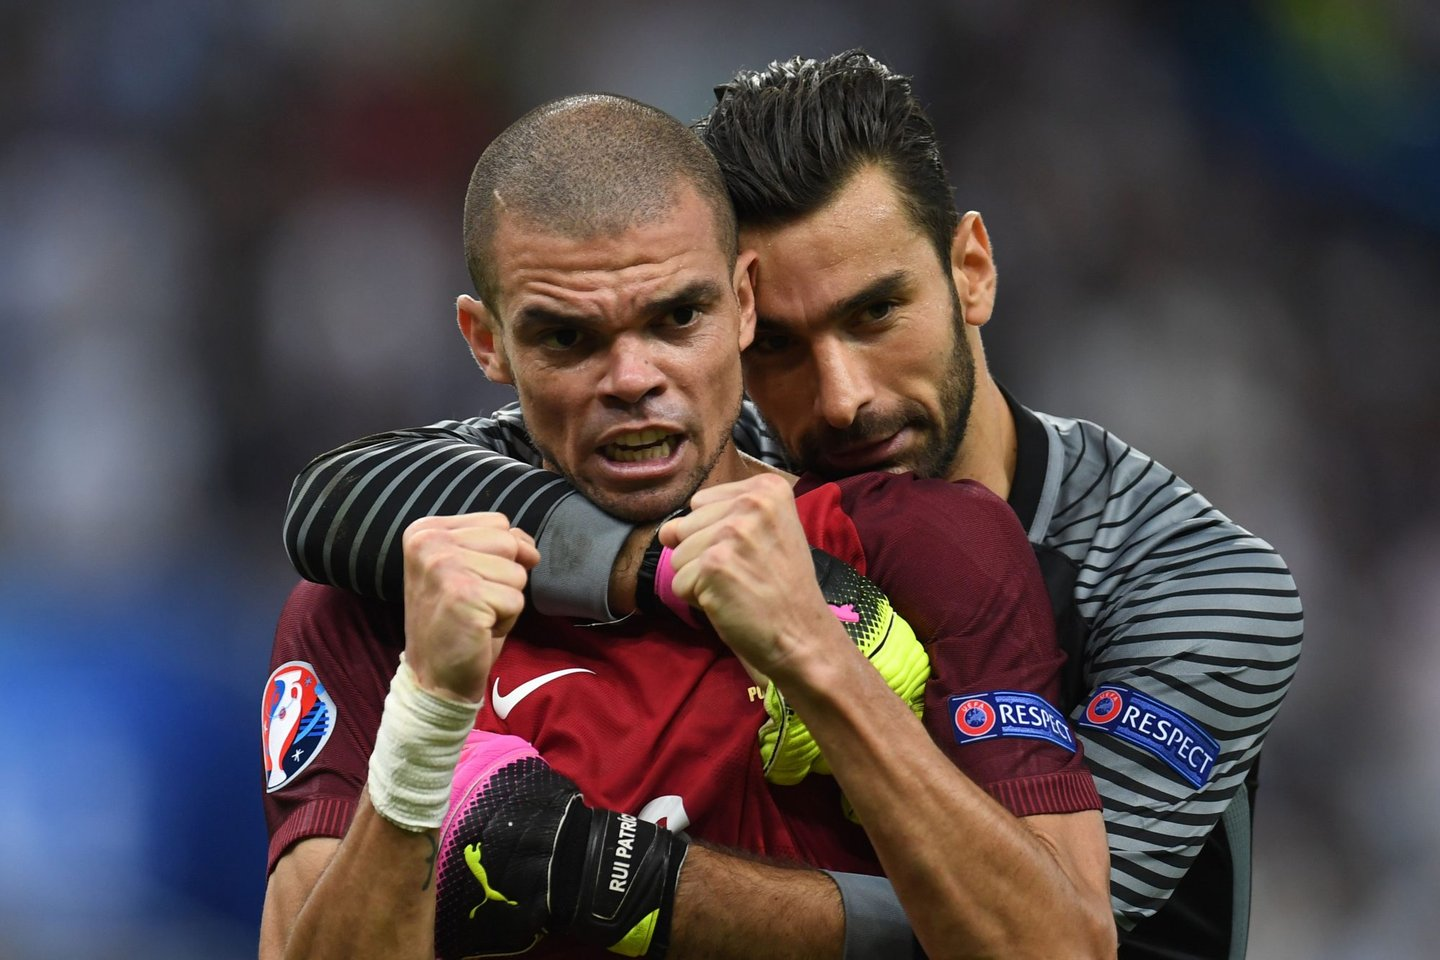 TOPSHOT - Portugal's defender Pepe (L) celebrates with Portugal's goalkeeper Rui Patricio during the Euro 2016 final football match between Portugal and France at the Stade de France in Saint-Denis, north of Paris, on July 10, 2016. / AFP / PATRIK STOLLARZ (Photo credit should read PATRIK STOLLARZ/AFP/Getty Images)